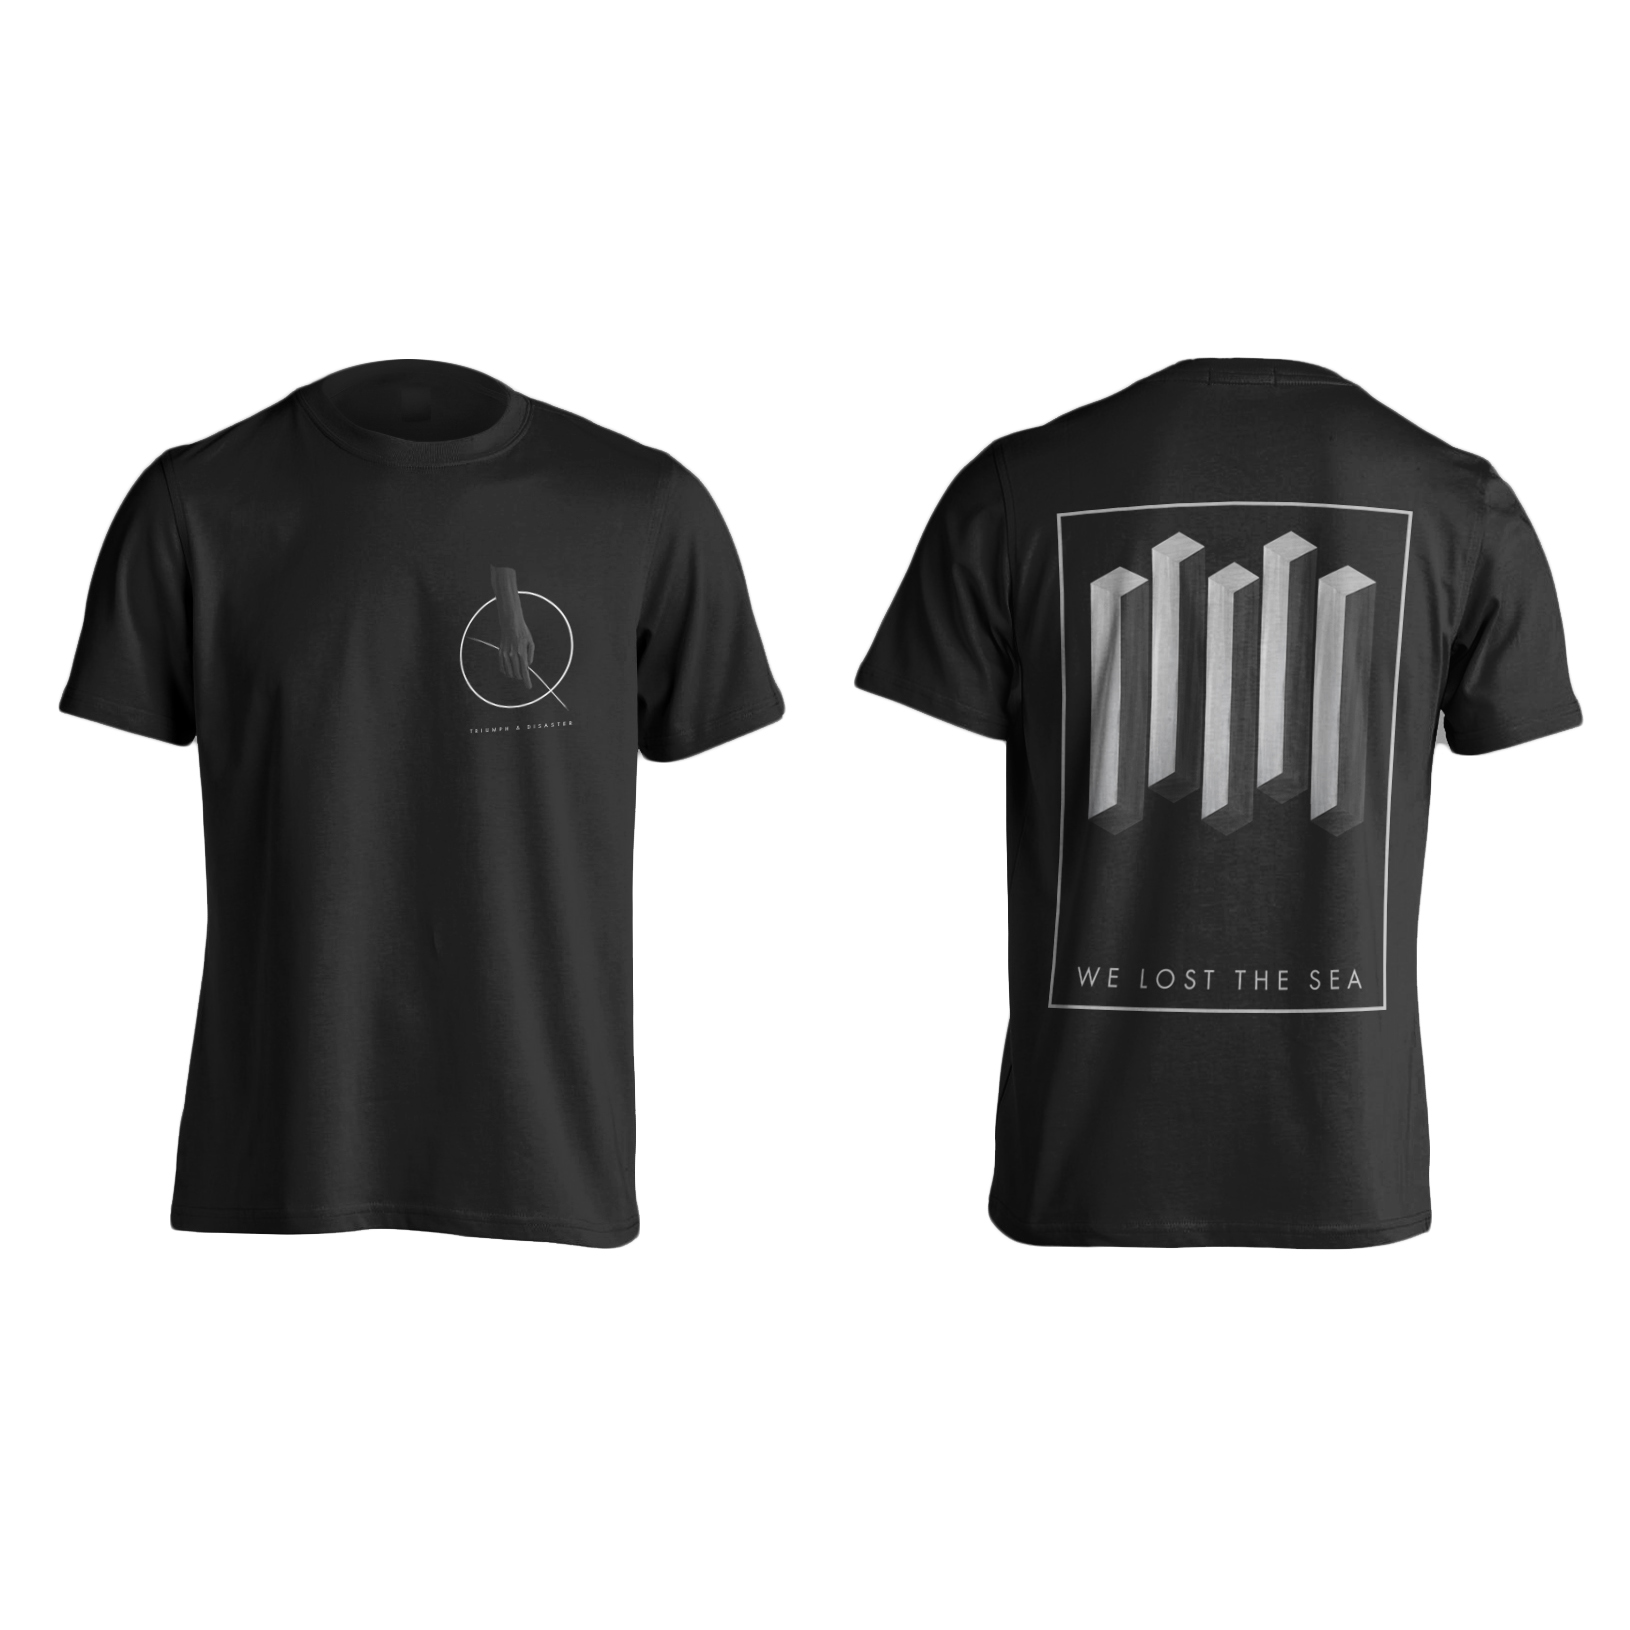 We Lost The Sea - Triumph & Disaster shirt PREORDER